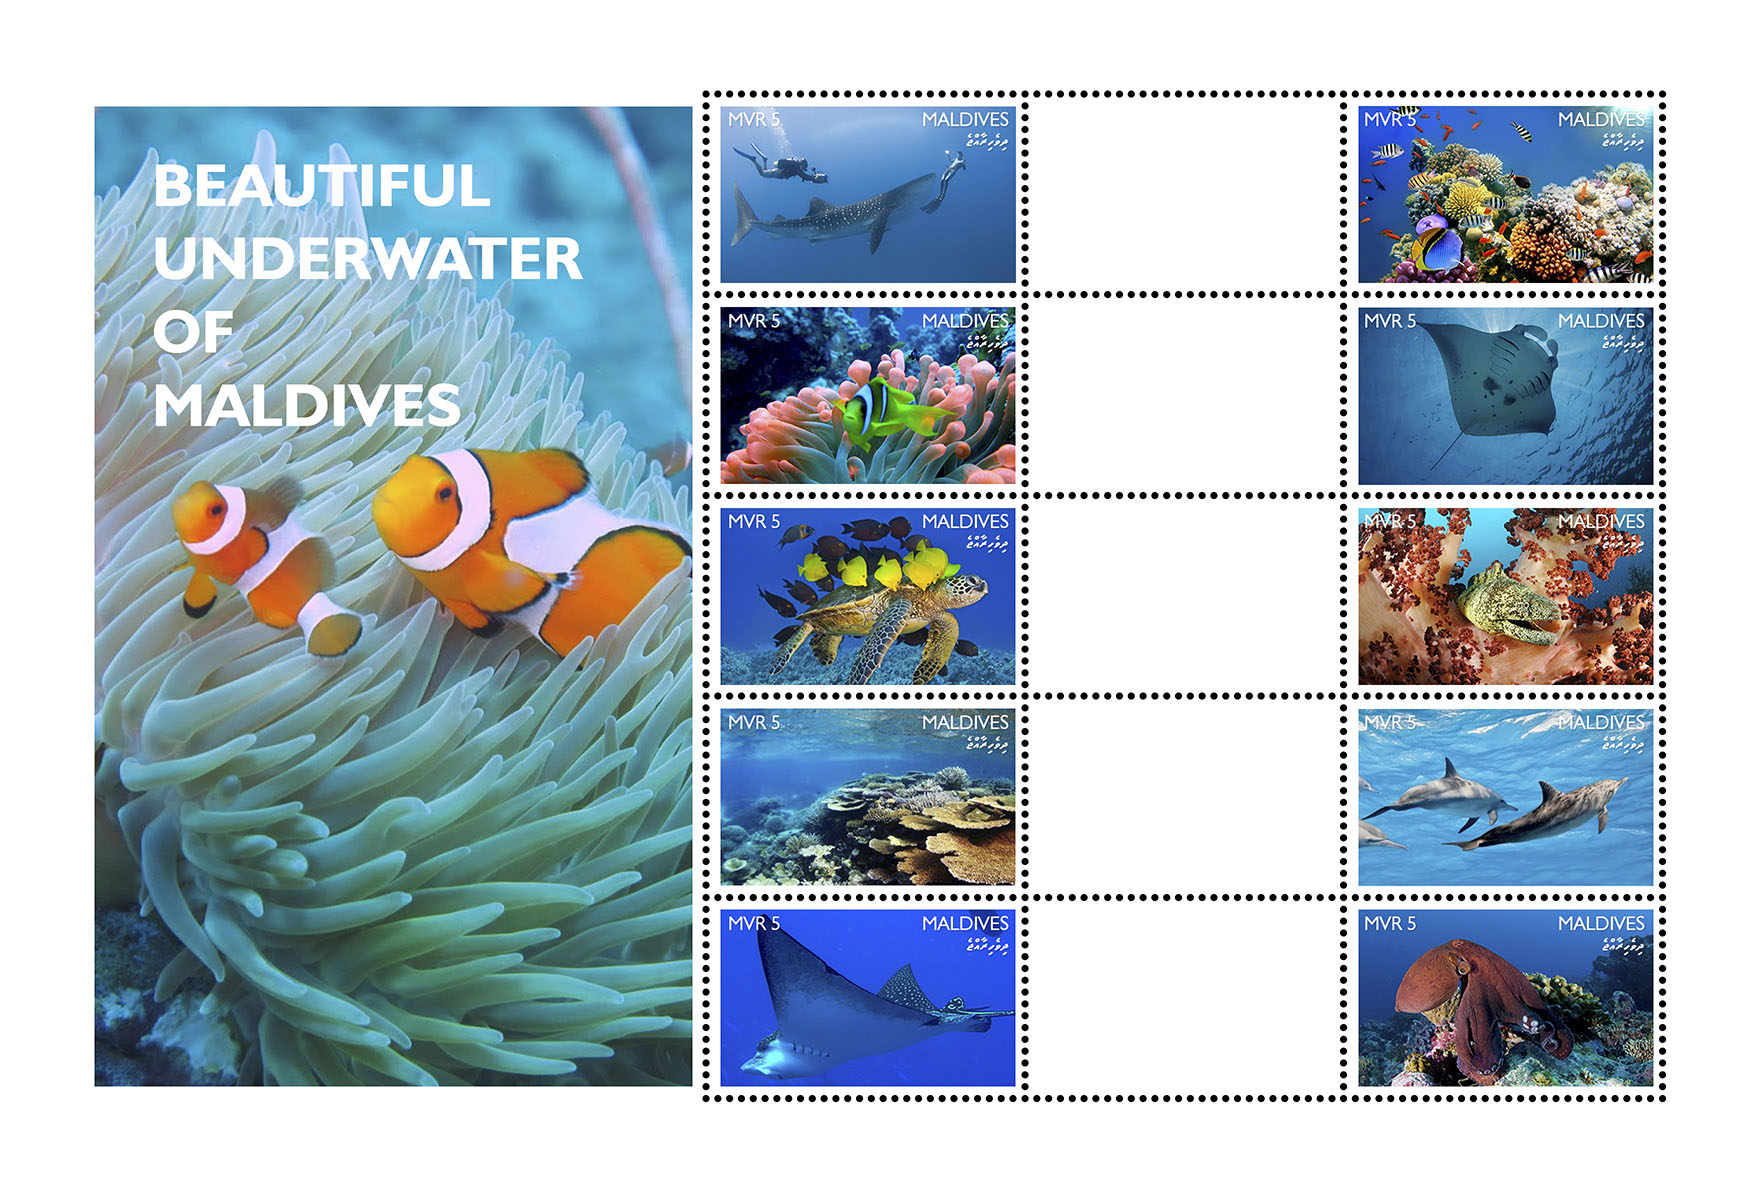 Beautiful Underwater of Maldives - Issue of Maldives postage stamps